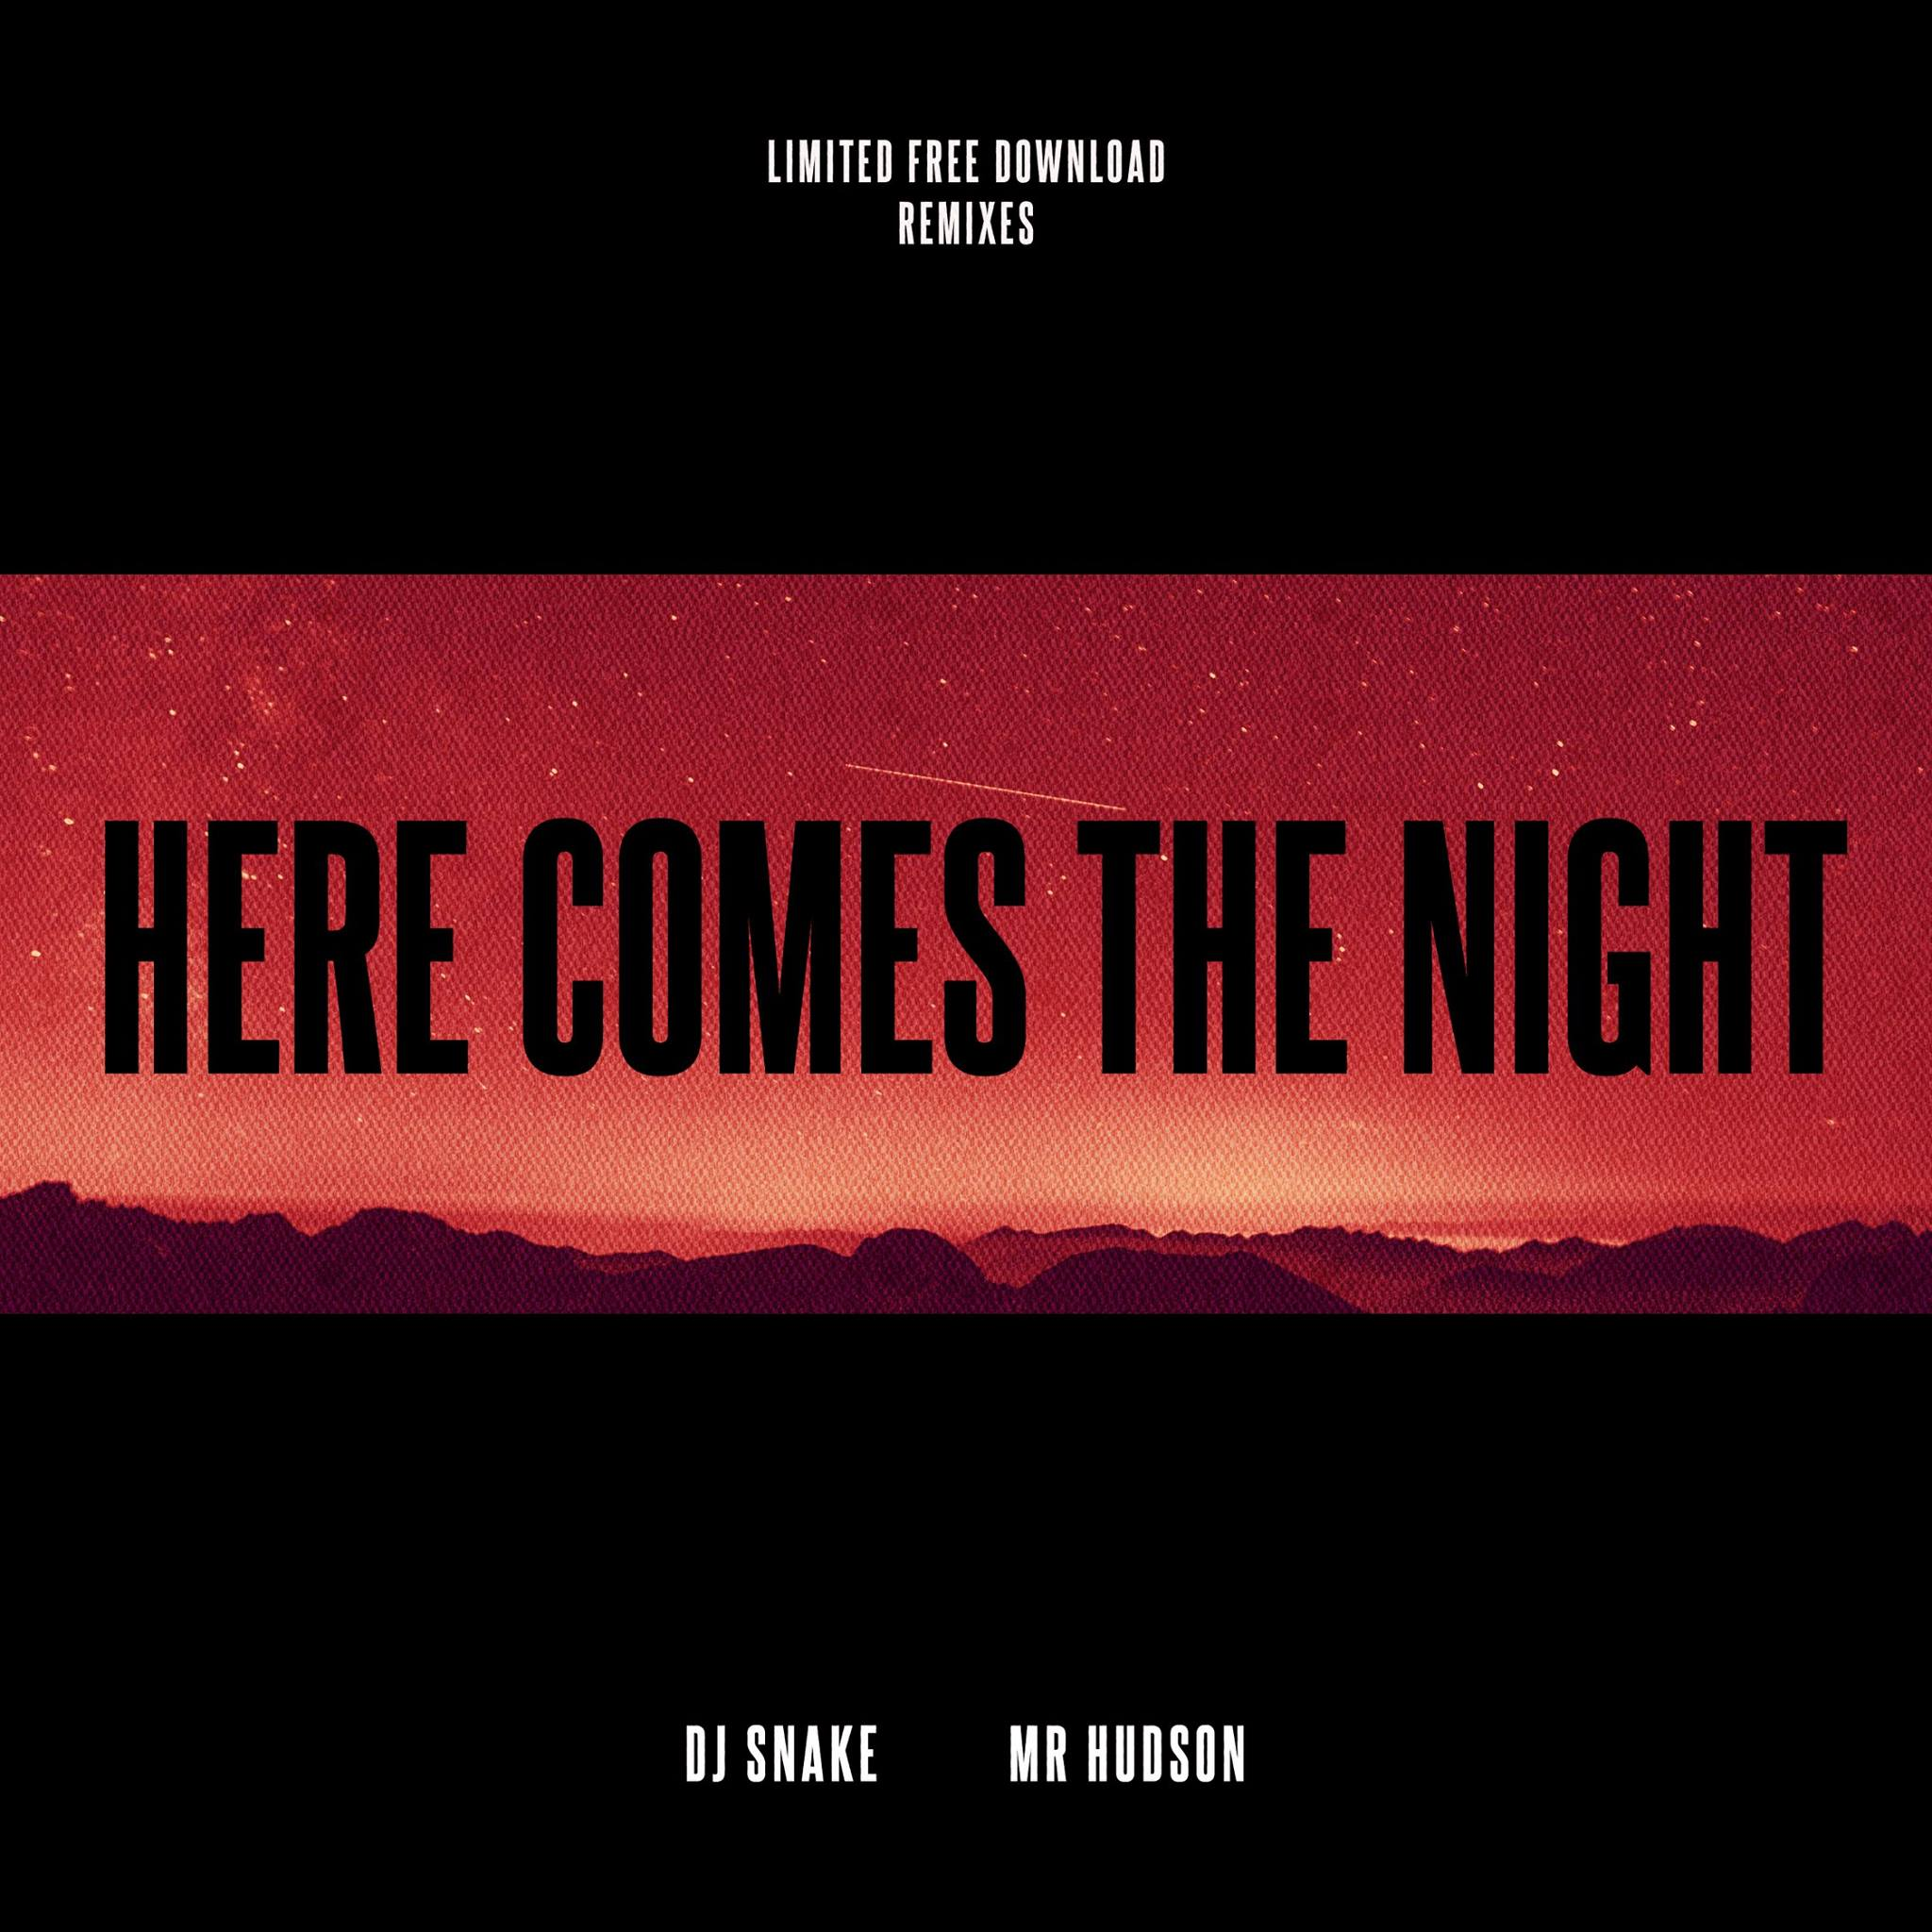 Downolad Dj Taki Taki Metro: DJ Snake's 'Here Comes The Night' Gets Remixed By NGHTMRE